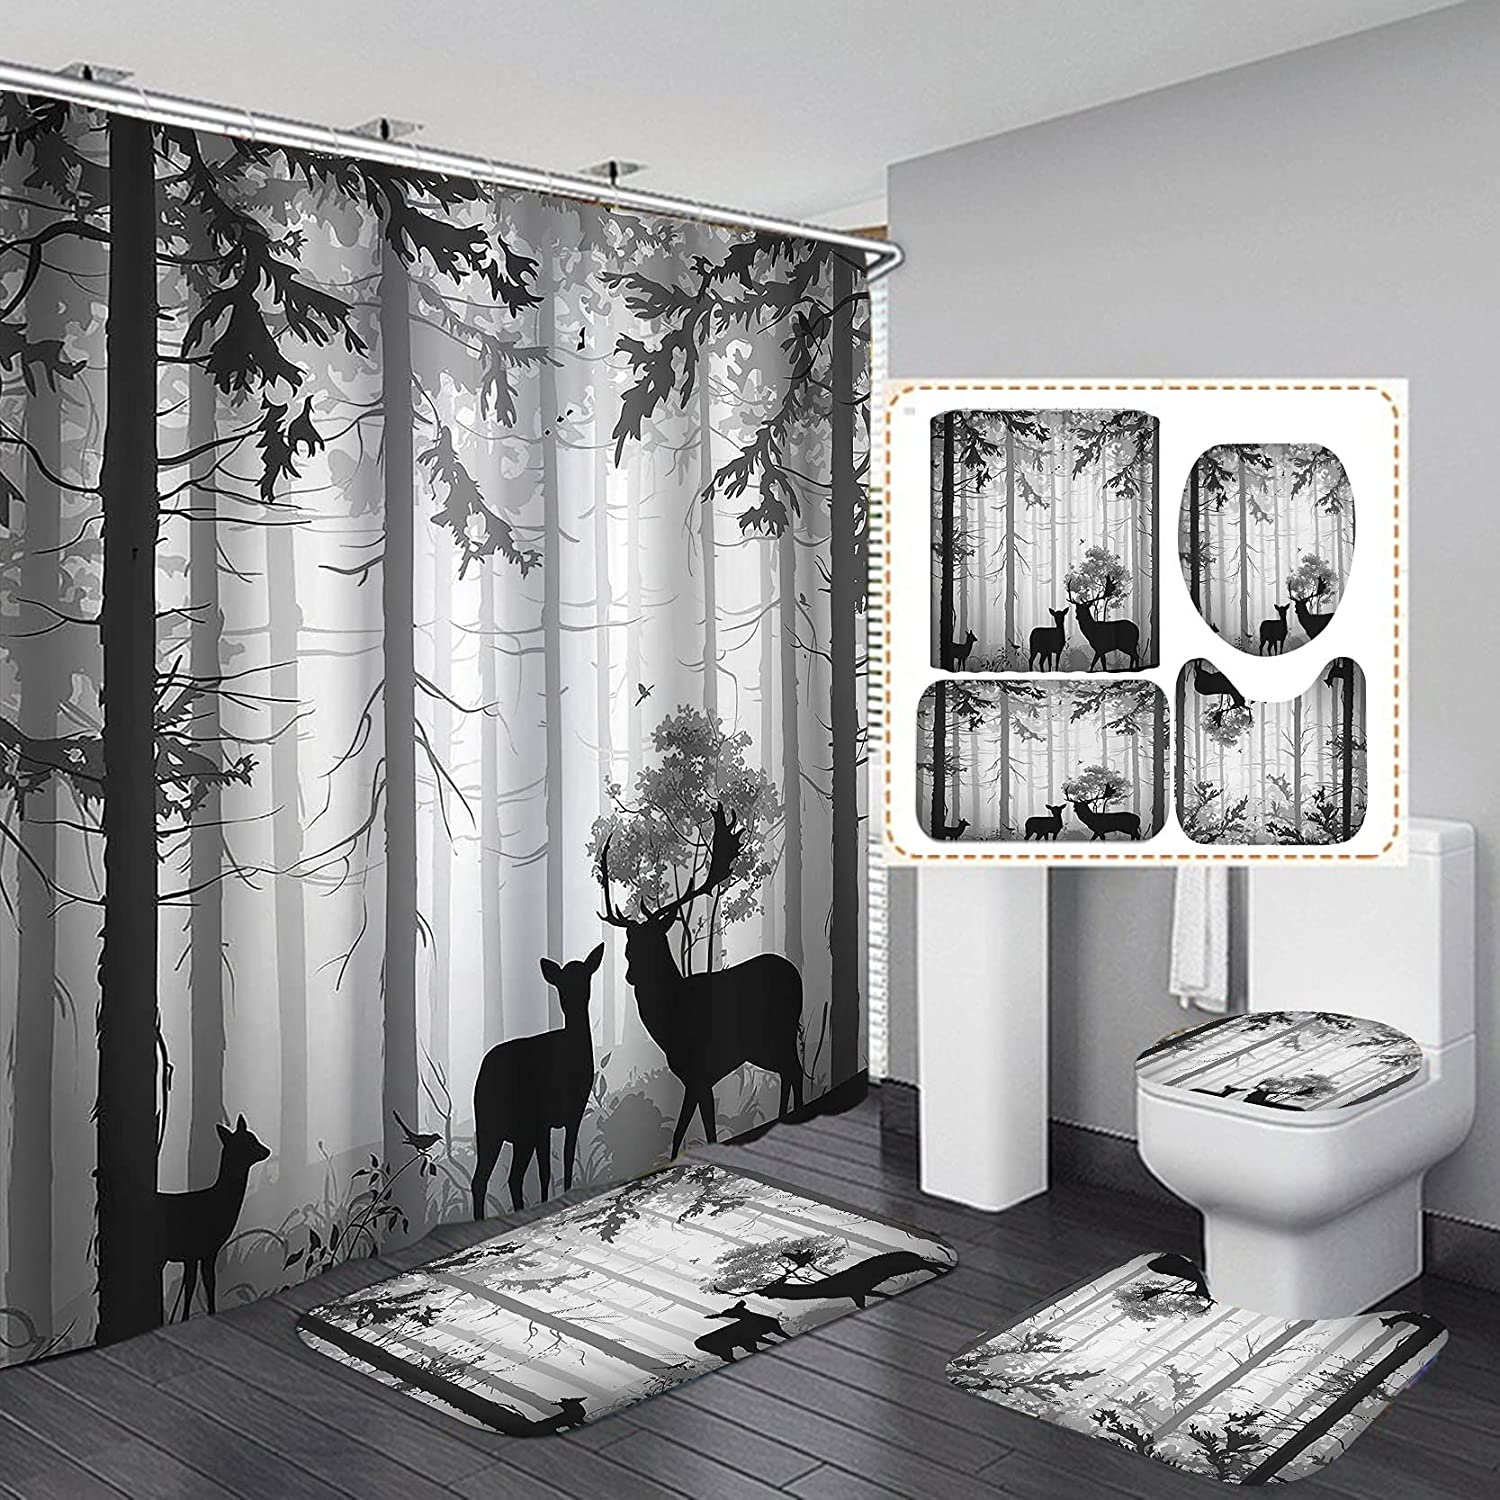 CamilleAndrew 4PCS Set Black Shipping included Rustic Shower with Curtain Max 66% OFF Deer No